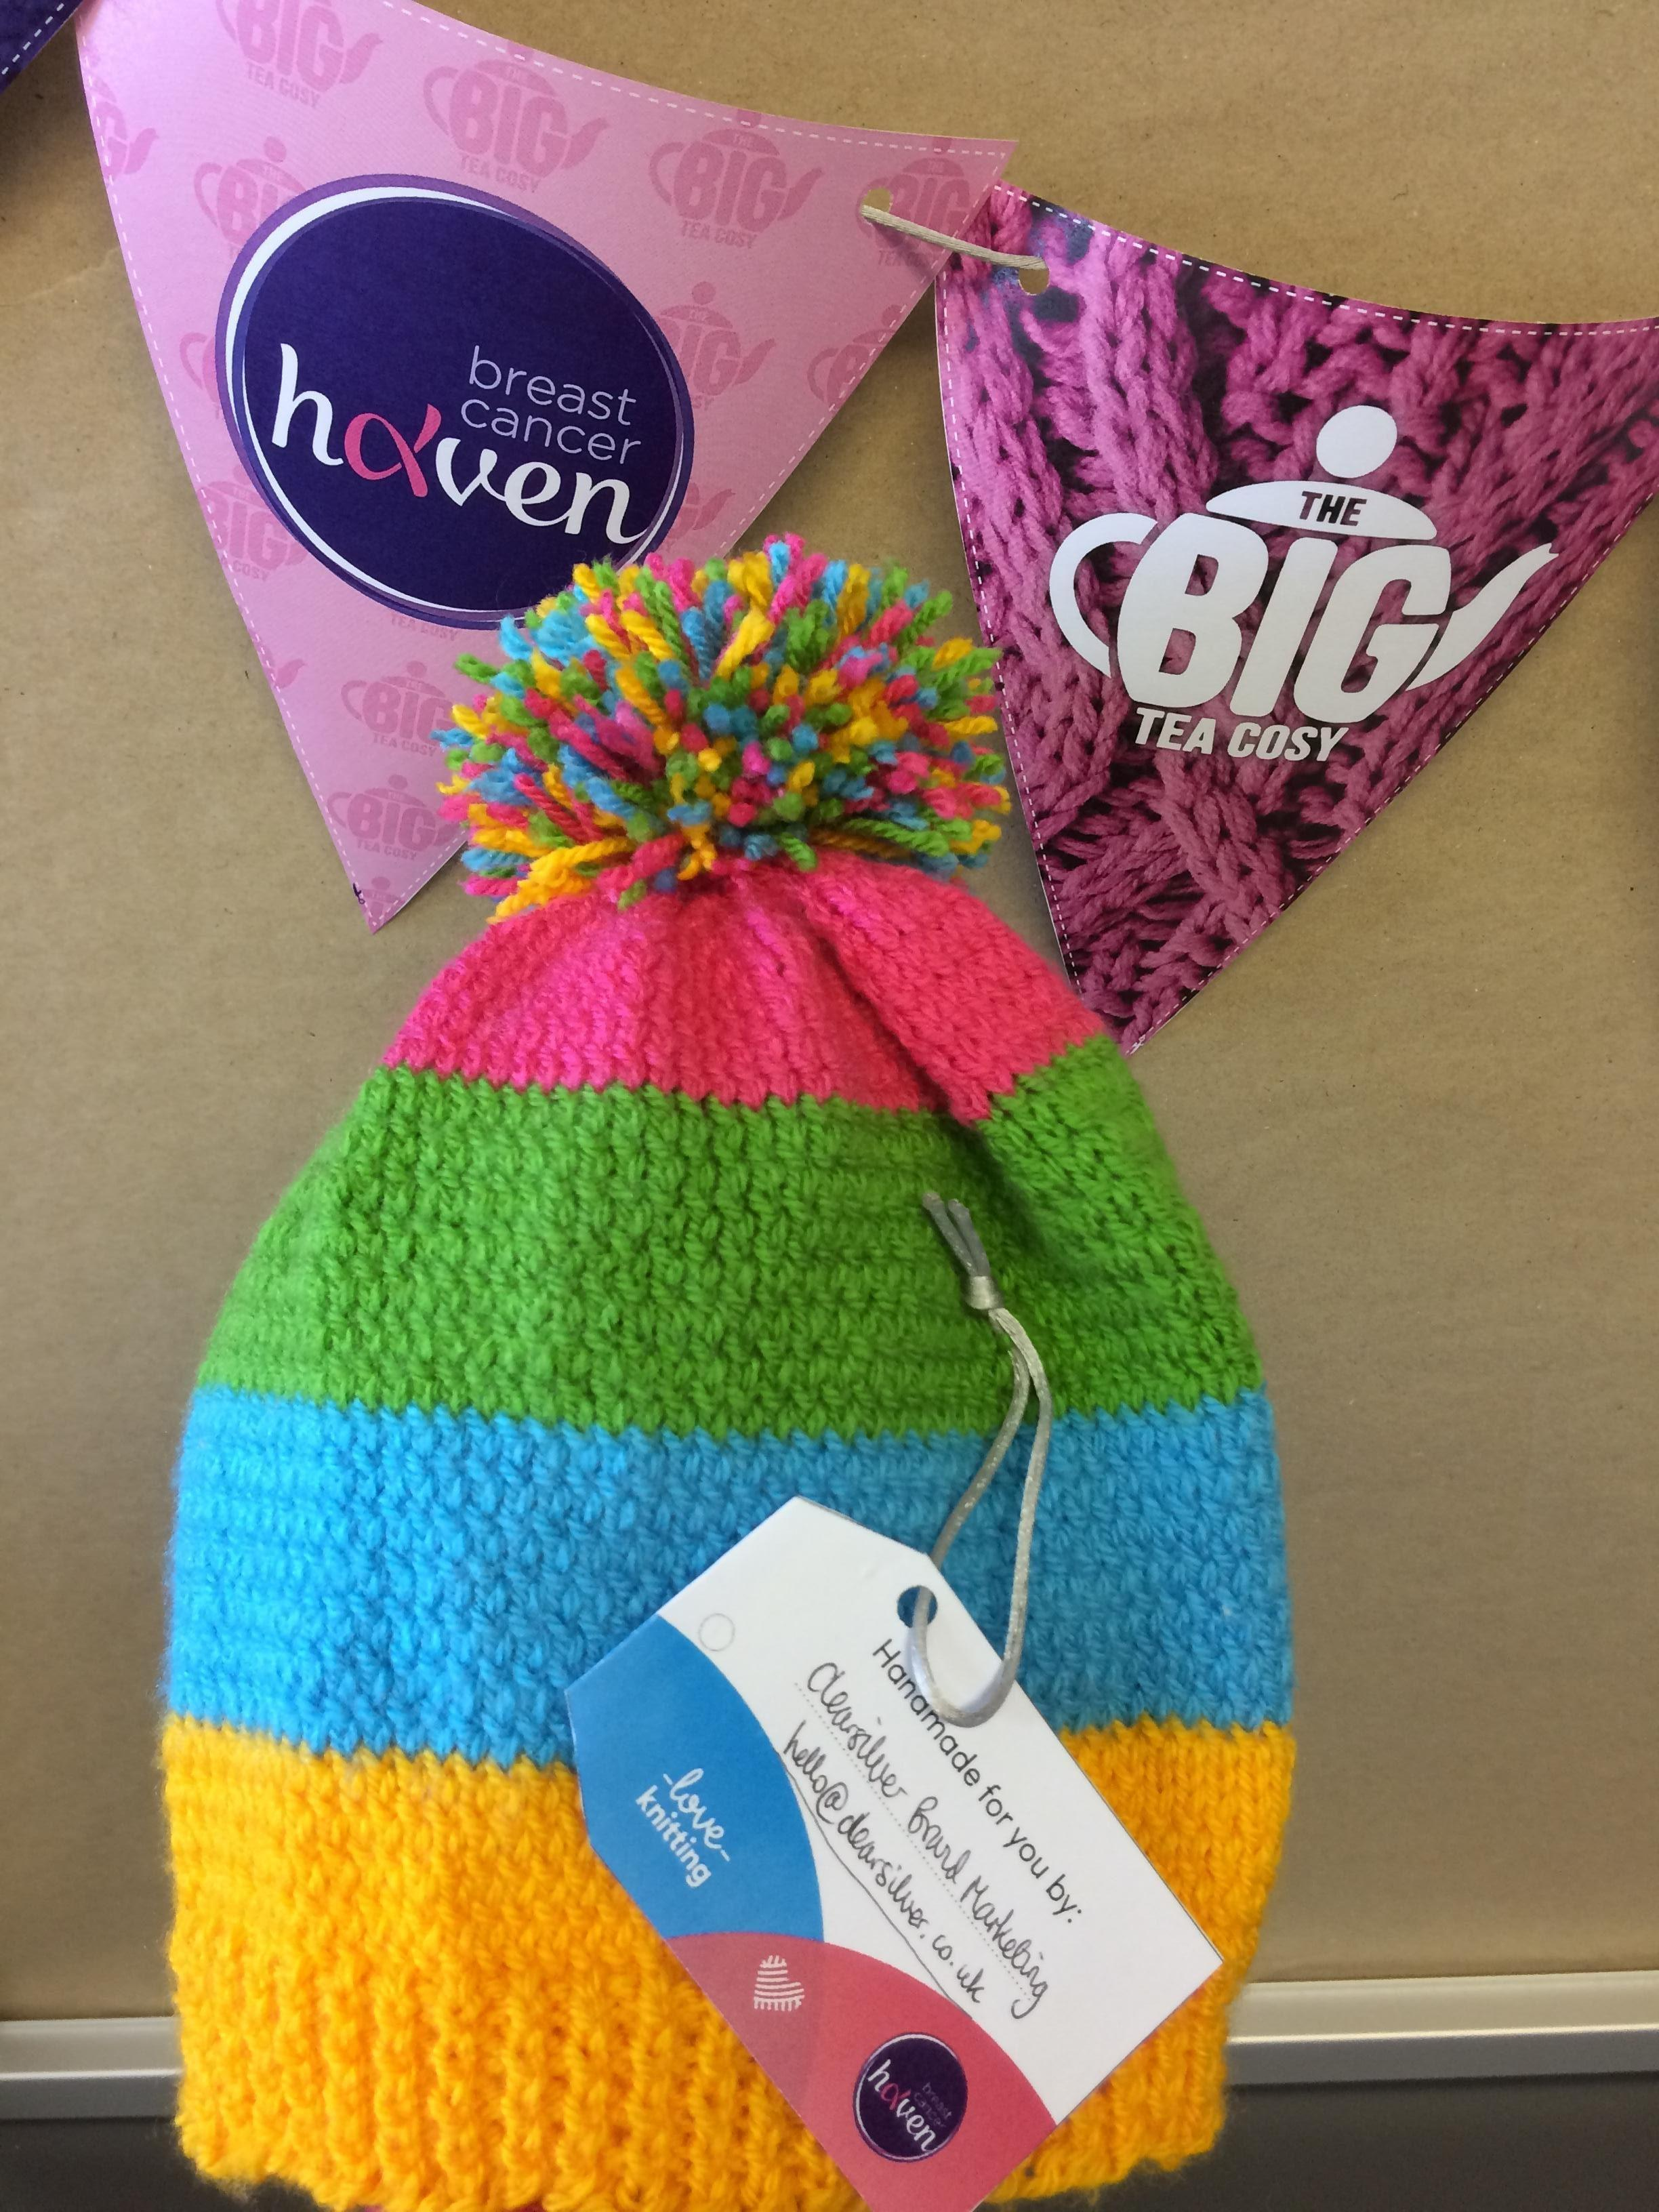 Big Tea Cosy - knitted bobble hat